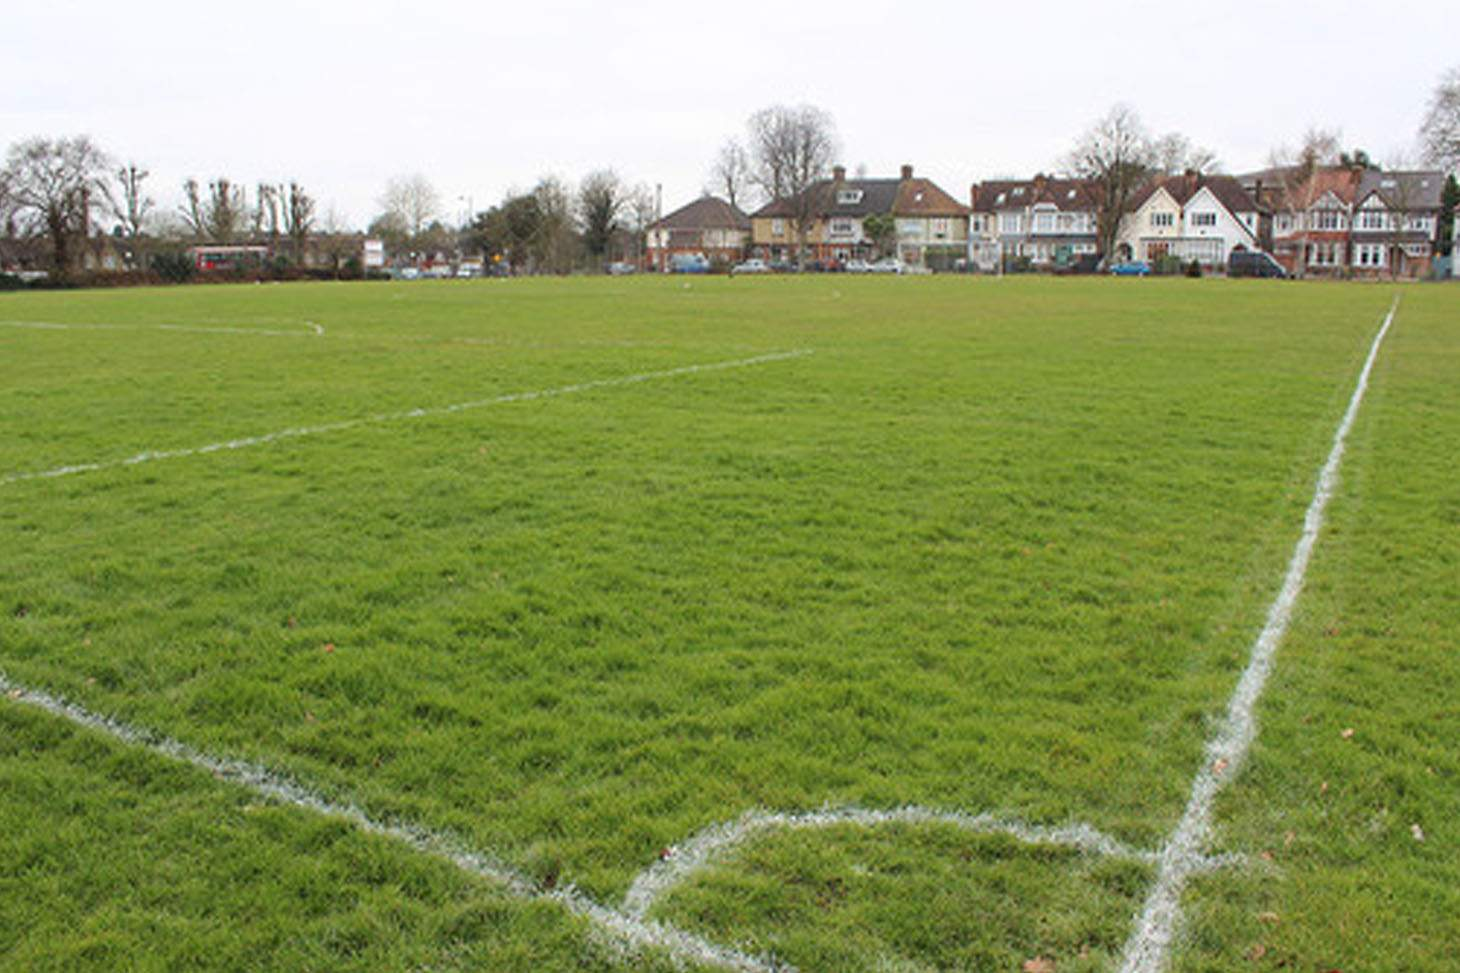 Bishop Rawstorne CE Academy 7 a side | Grass football pitch